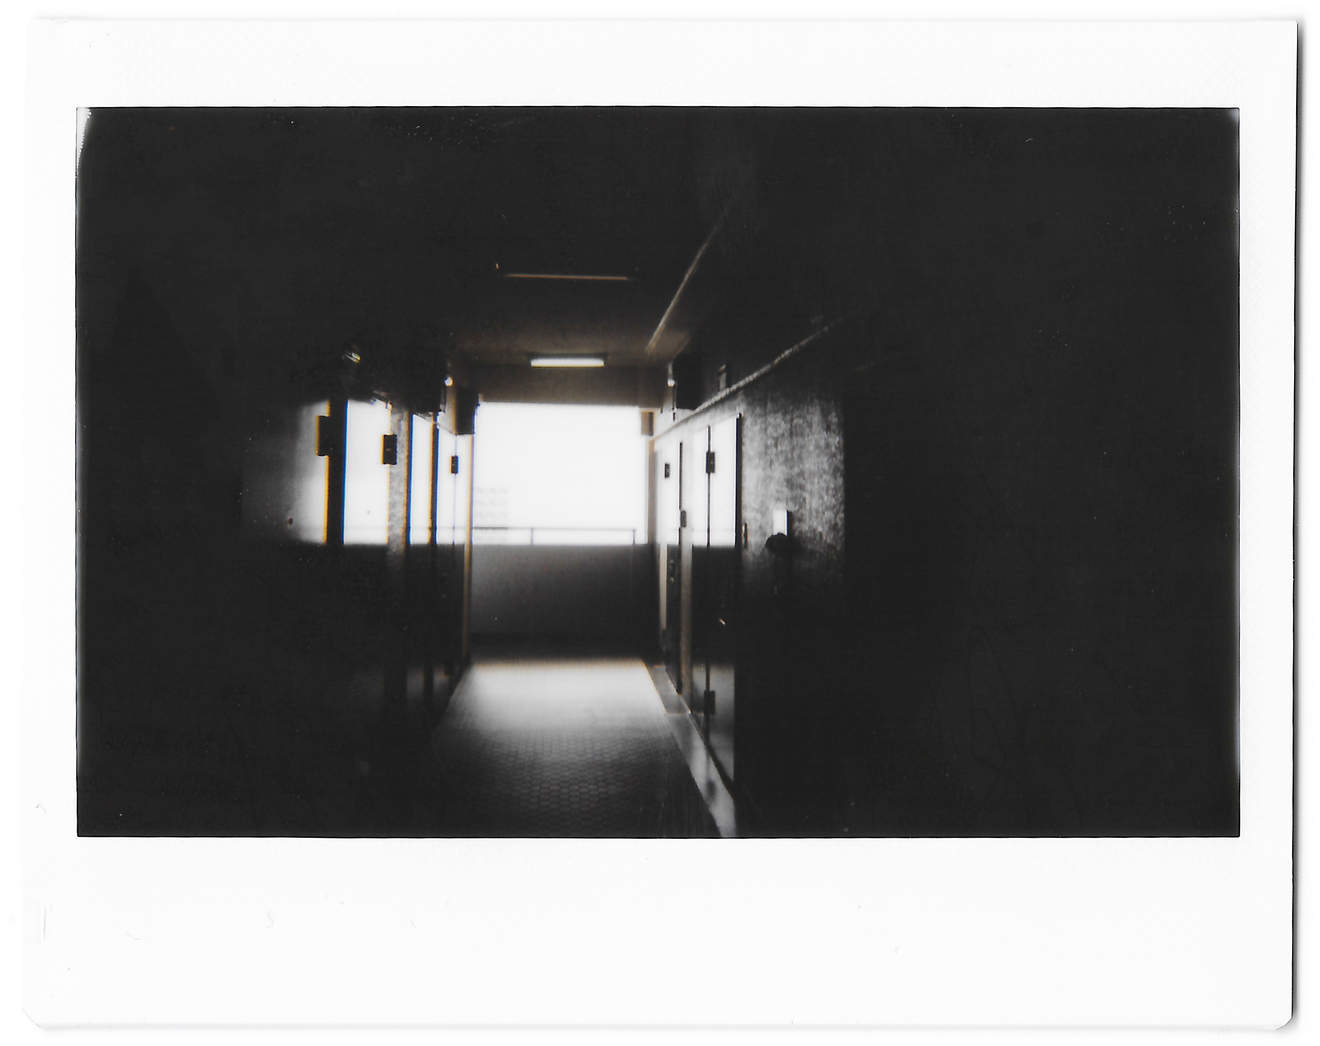 """Instant photo for Day 129 of """"A Year in an Instant"""" by Nuno Coelho Santos"""